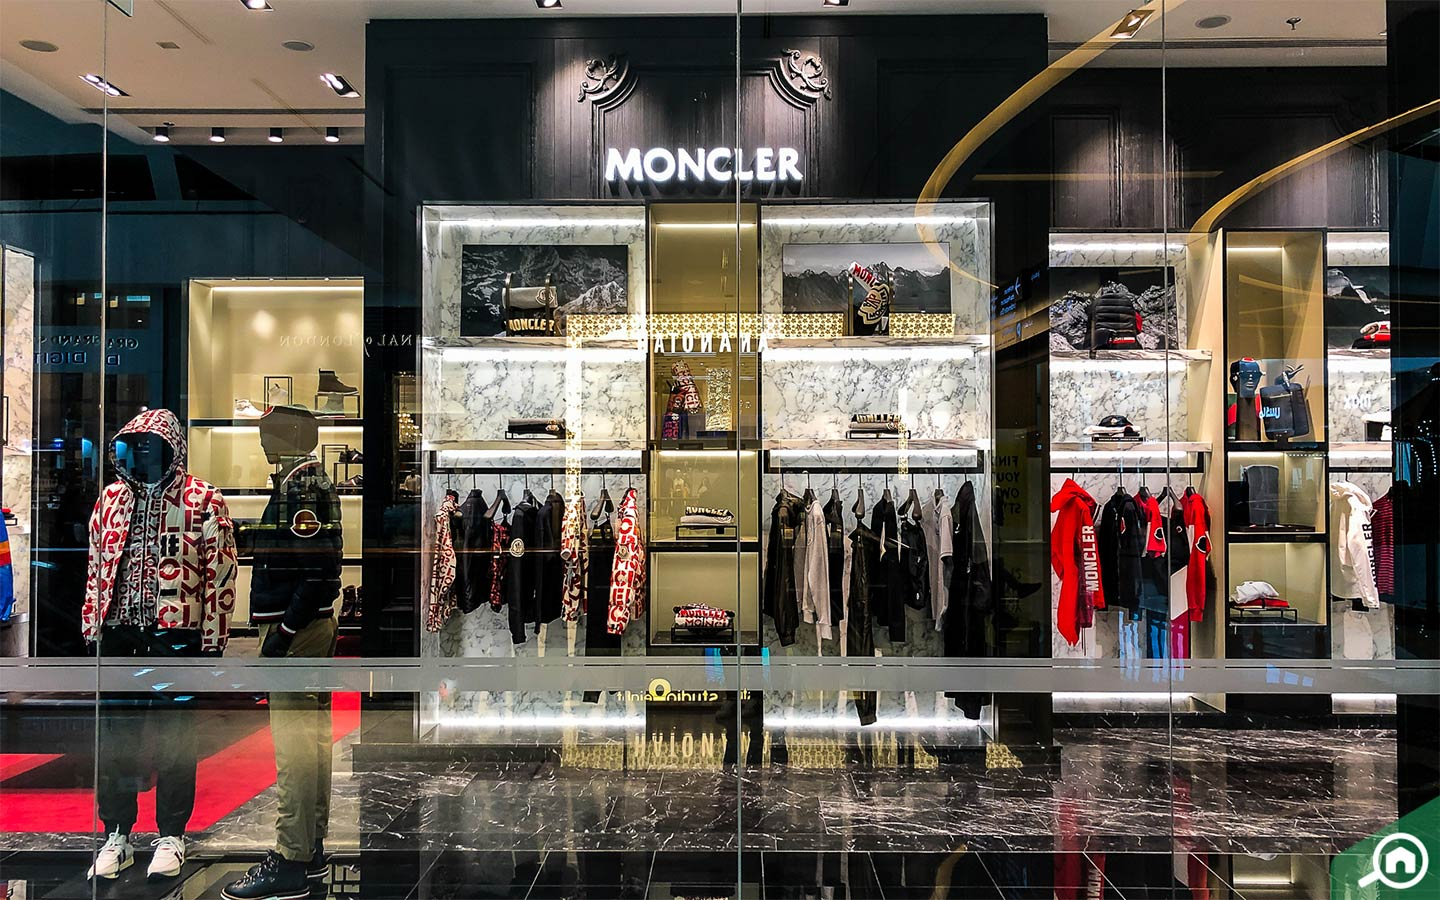 Moncler in The Dubai Mall